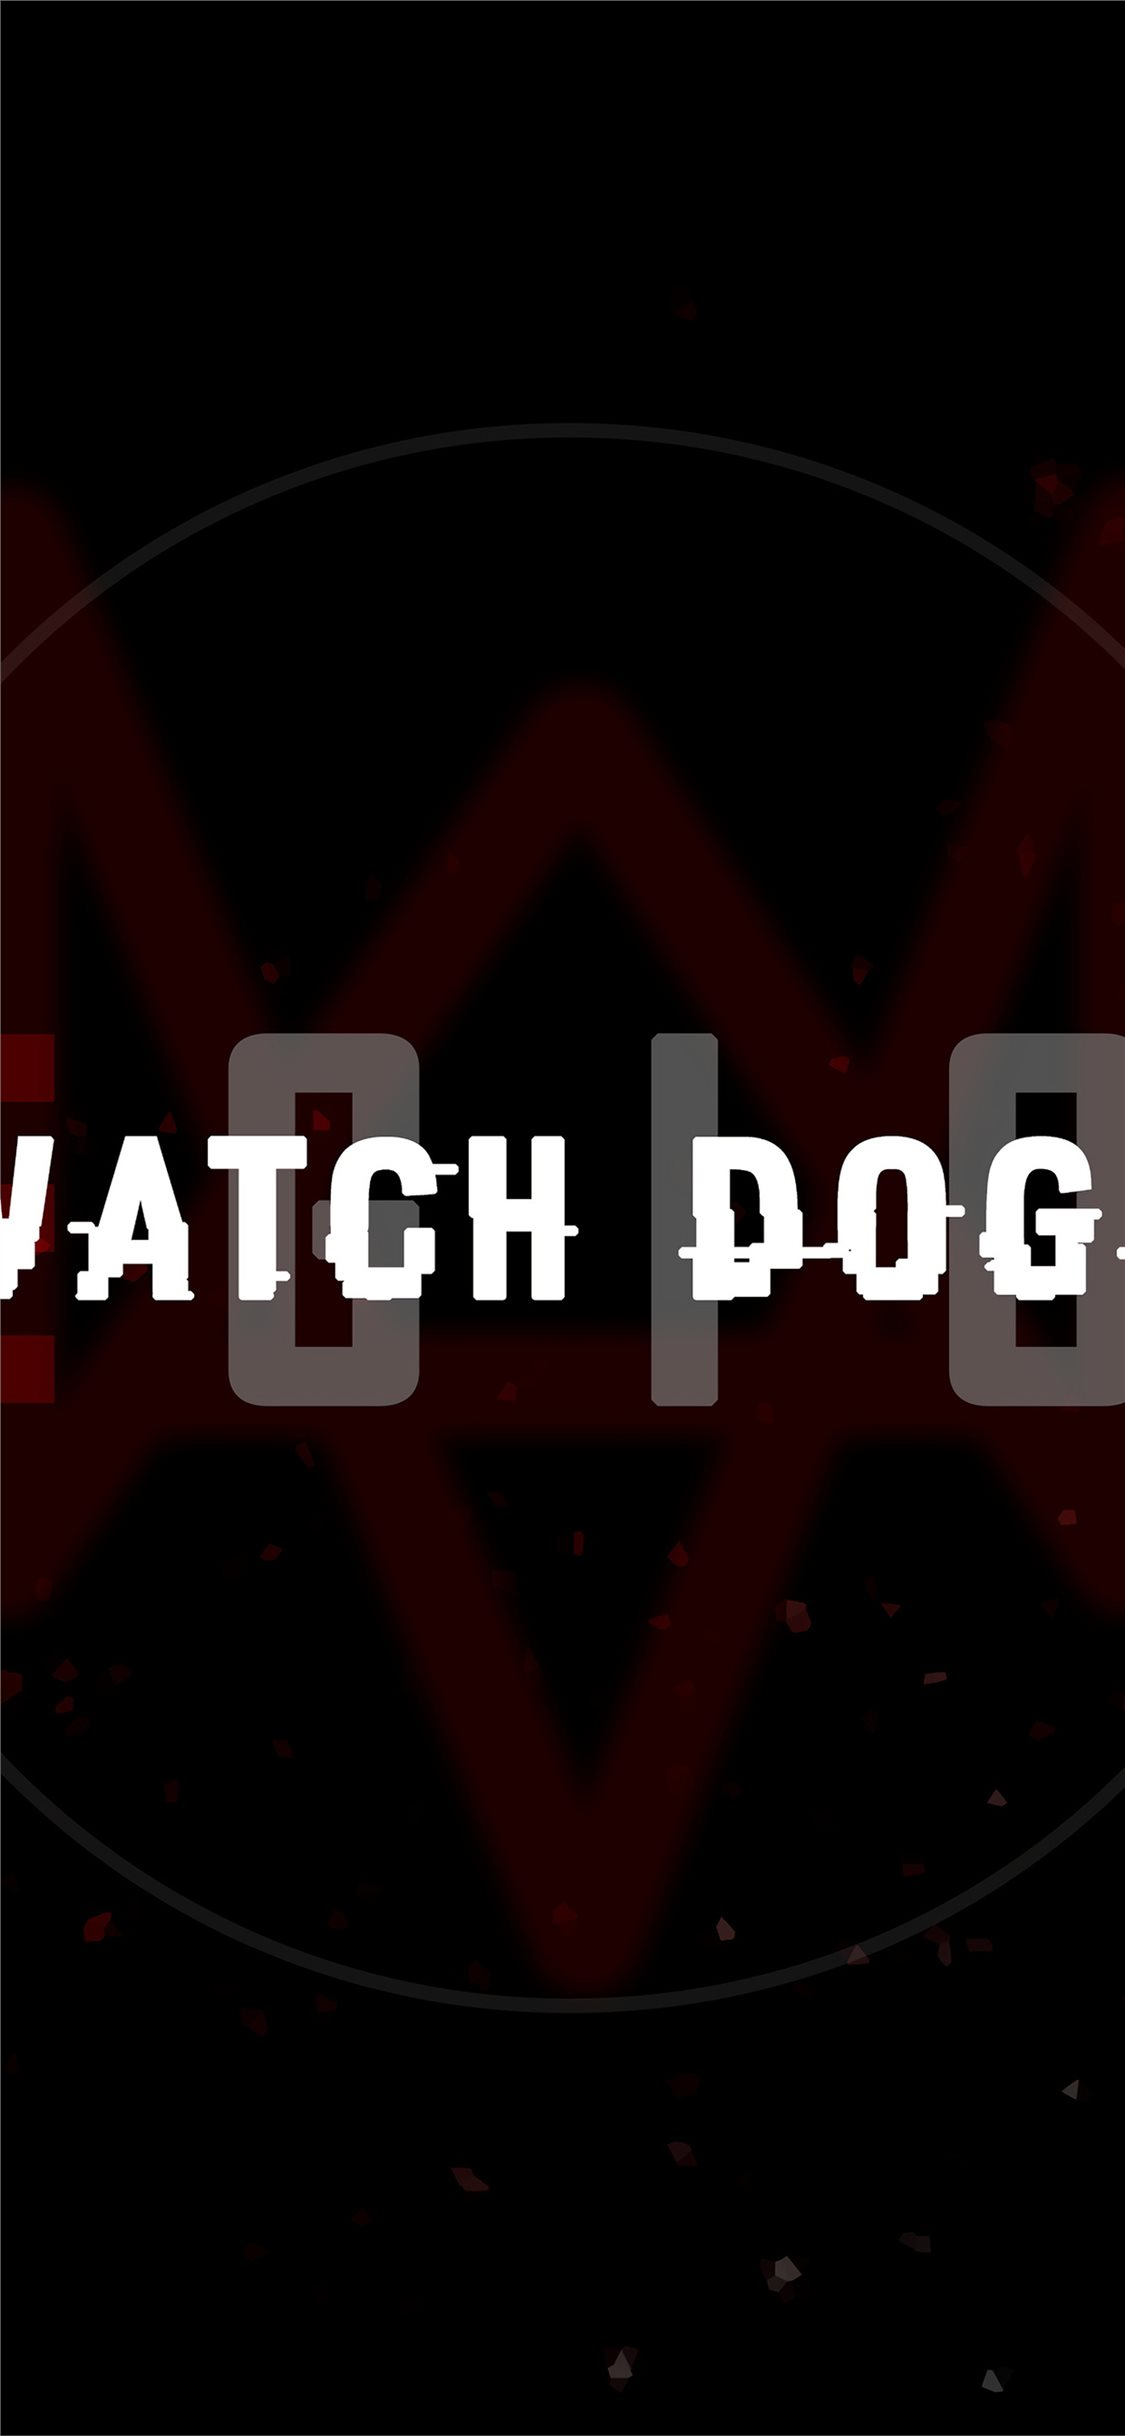 Watch Dogs Legion Logo 5k Iphone X Wallpapers Free Download